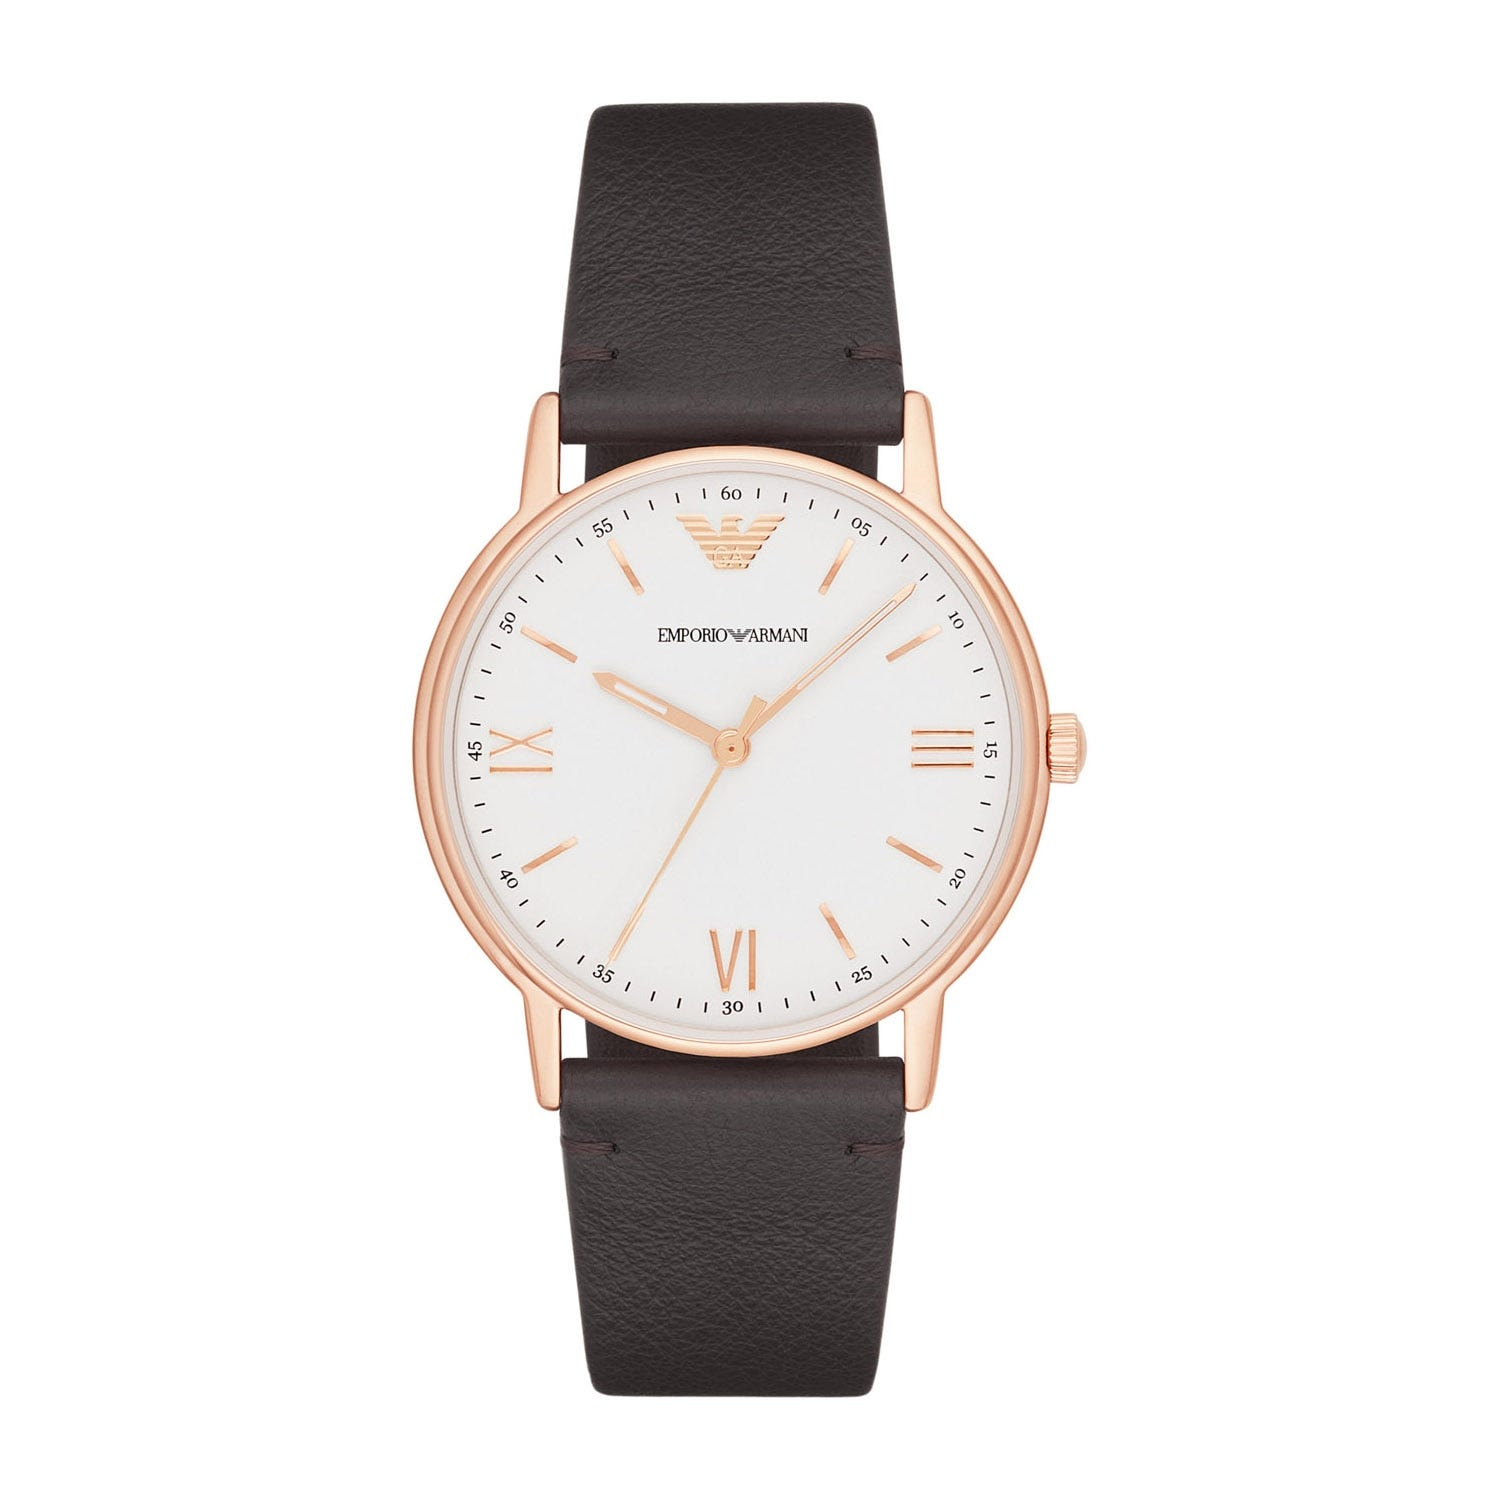 Emporio Armani Gents Brown Leather Strap Watch